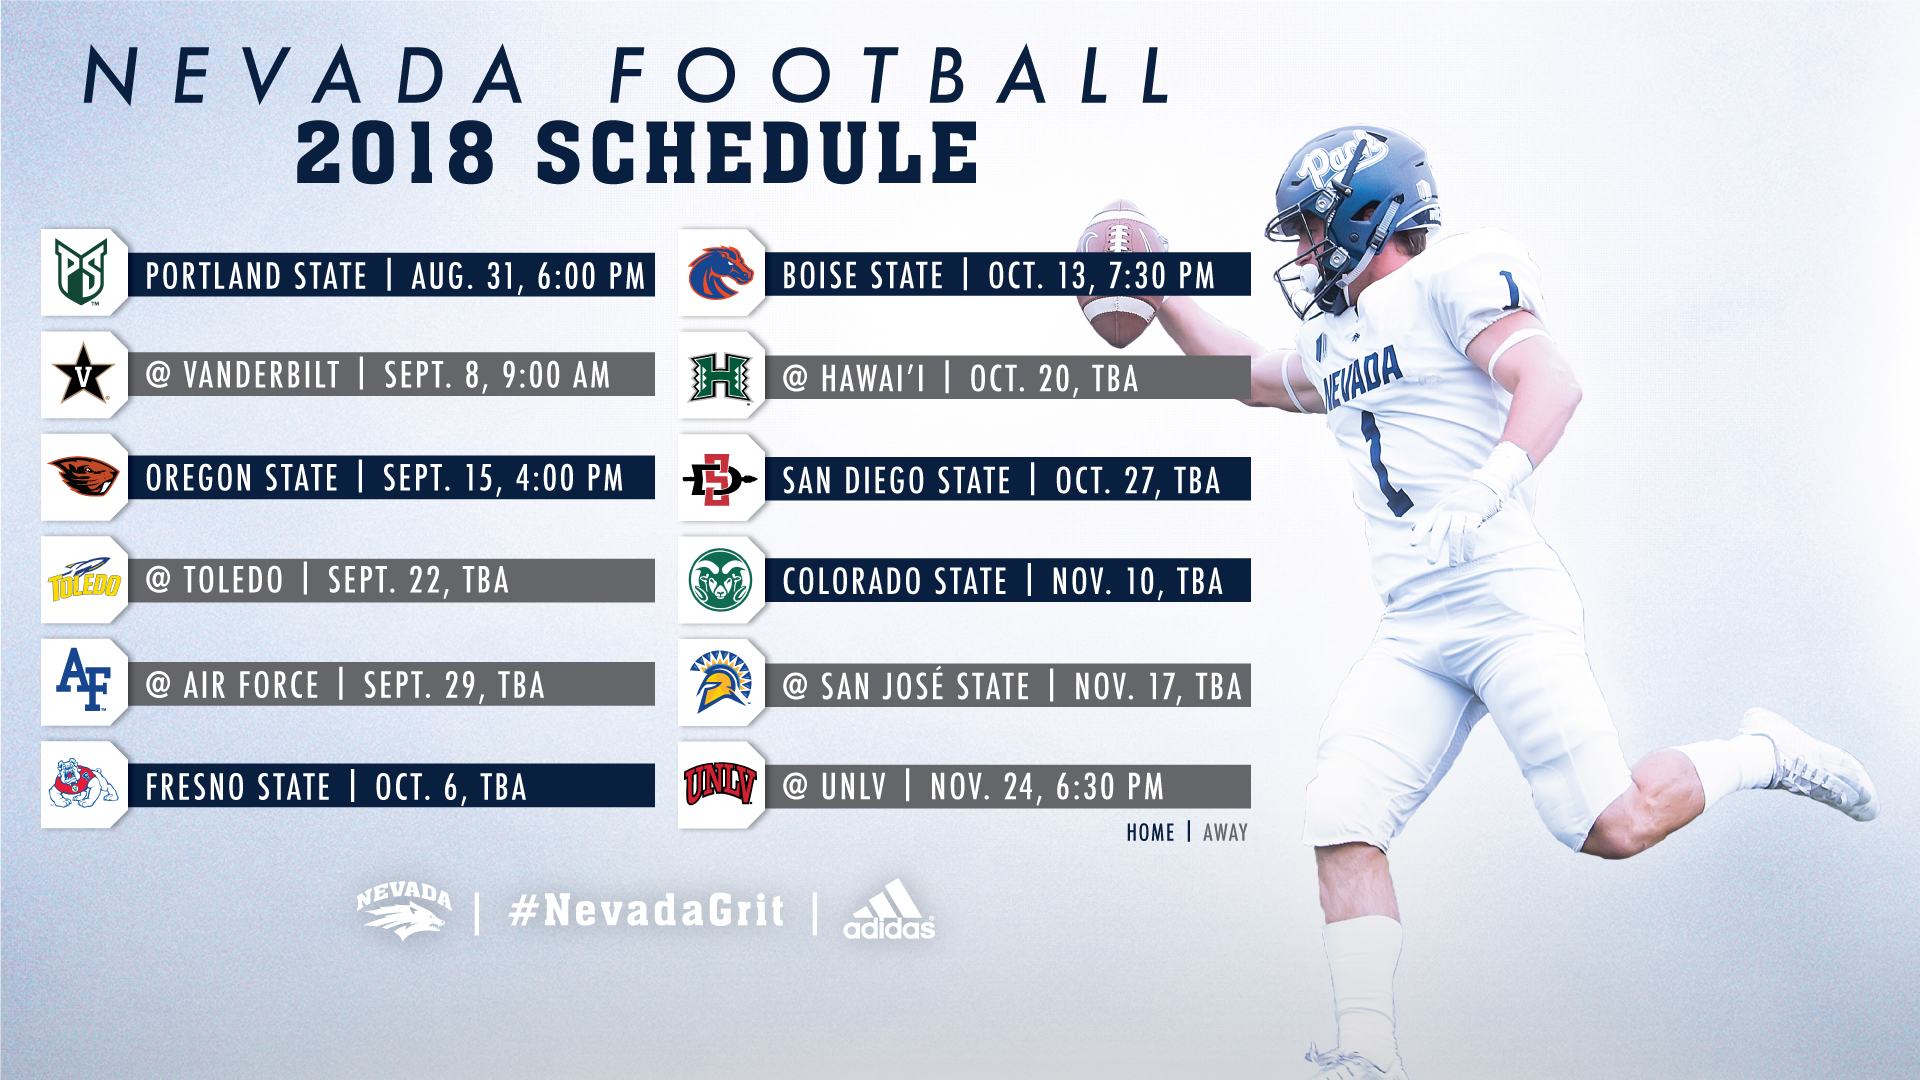 the 2018 nevada football schedule is here! - university of nevada